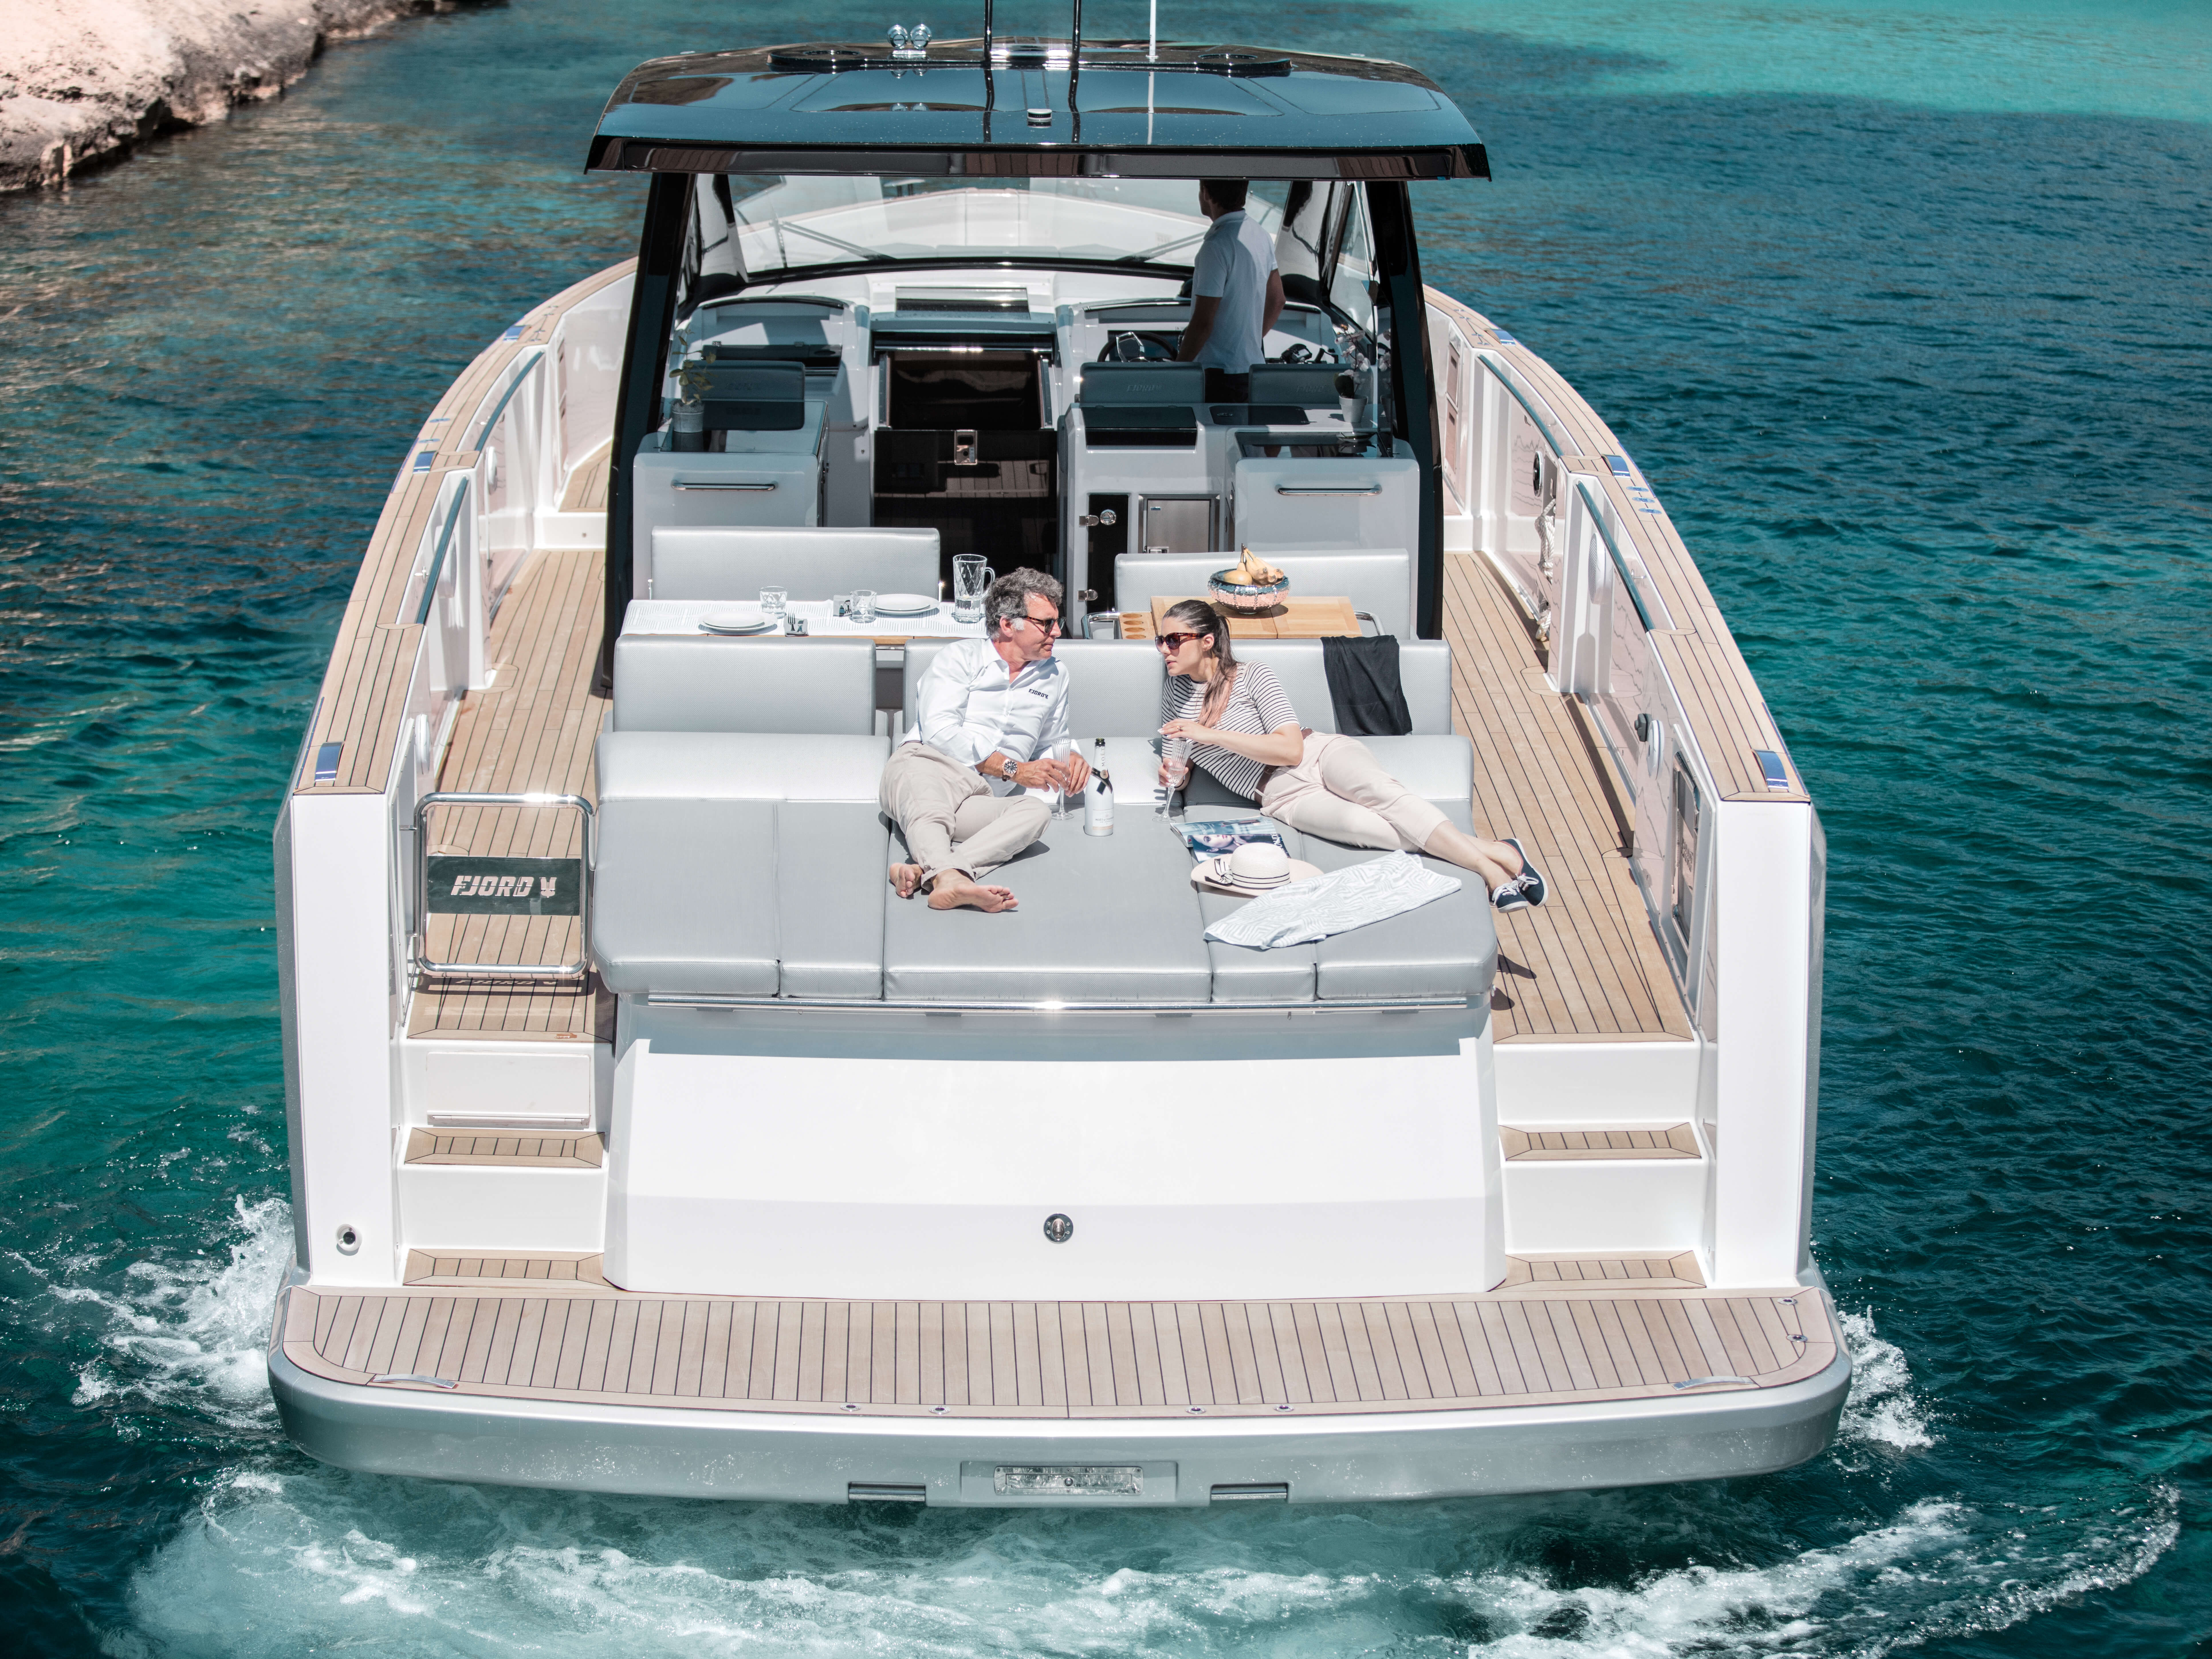 Fjord 48 open Exterior ride | bathing platform with teak and hydraulic lift, aft sunbed, ladder connecting main deck with bathing platform, stand alone bathing ladder with handles | Fjord